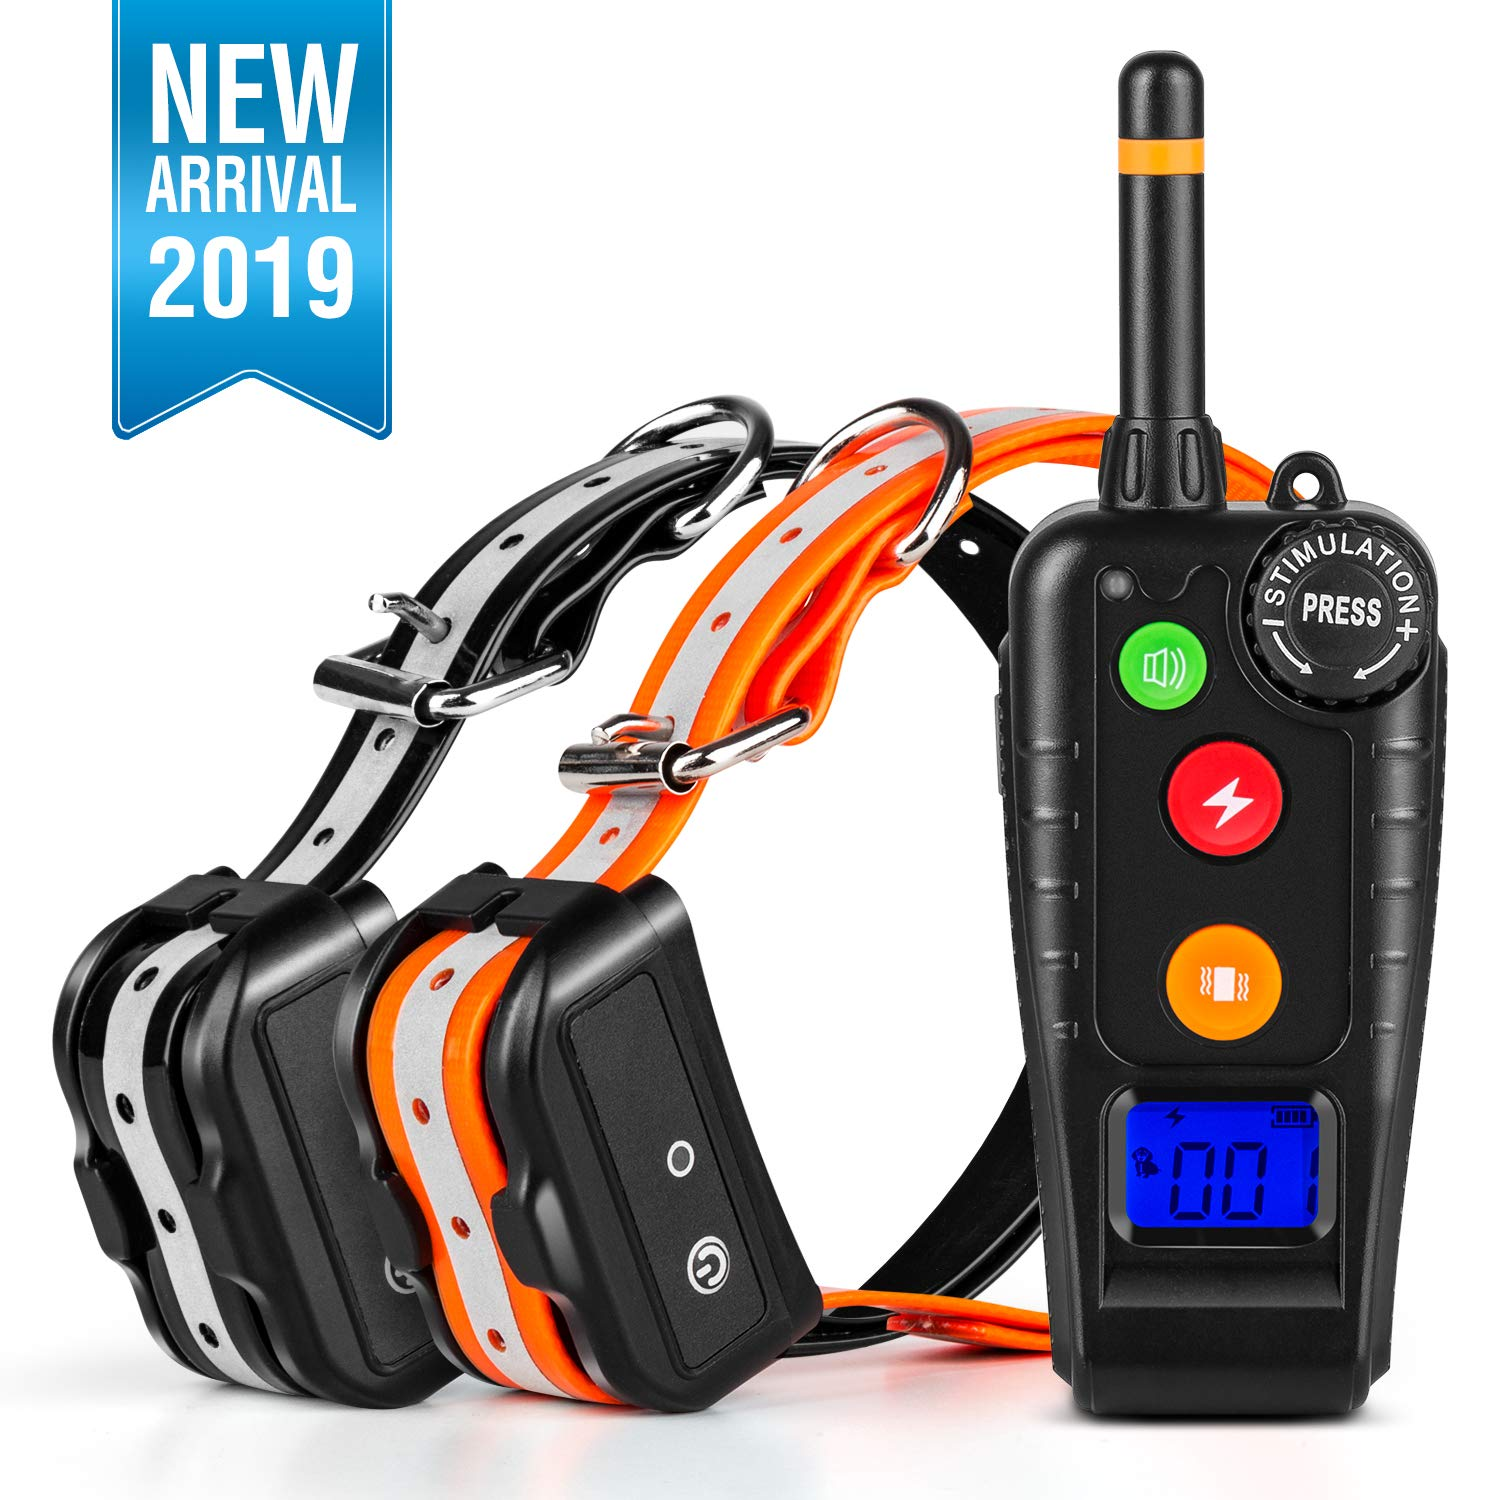 PetYeah Dog Training Collar for 2 Dogs,1000FT Remote Shock Collar for Dogs,Waterproof and Rechargeable,Beep/Vibration/Shock w/3 Training Modes for Small Medium Large Dogs by PetYeah